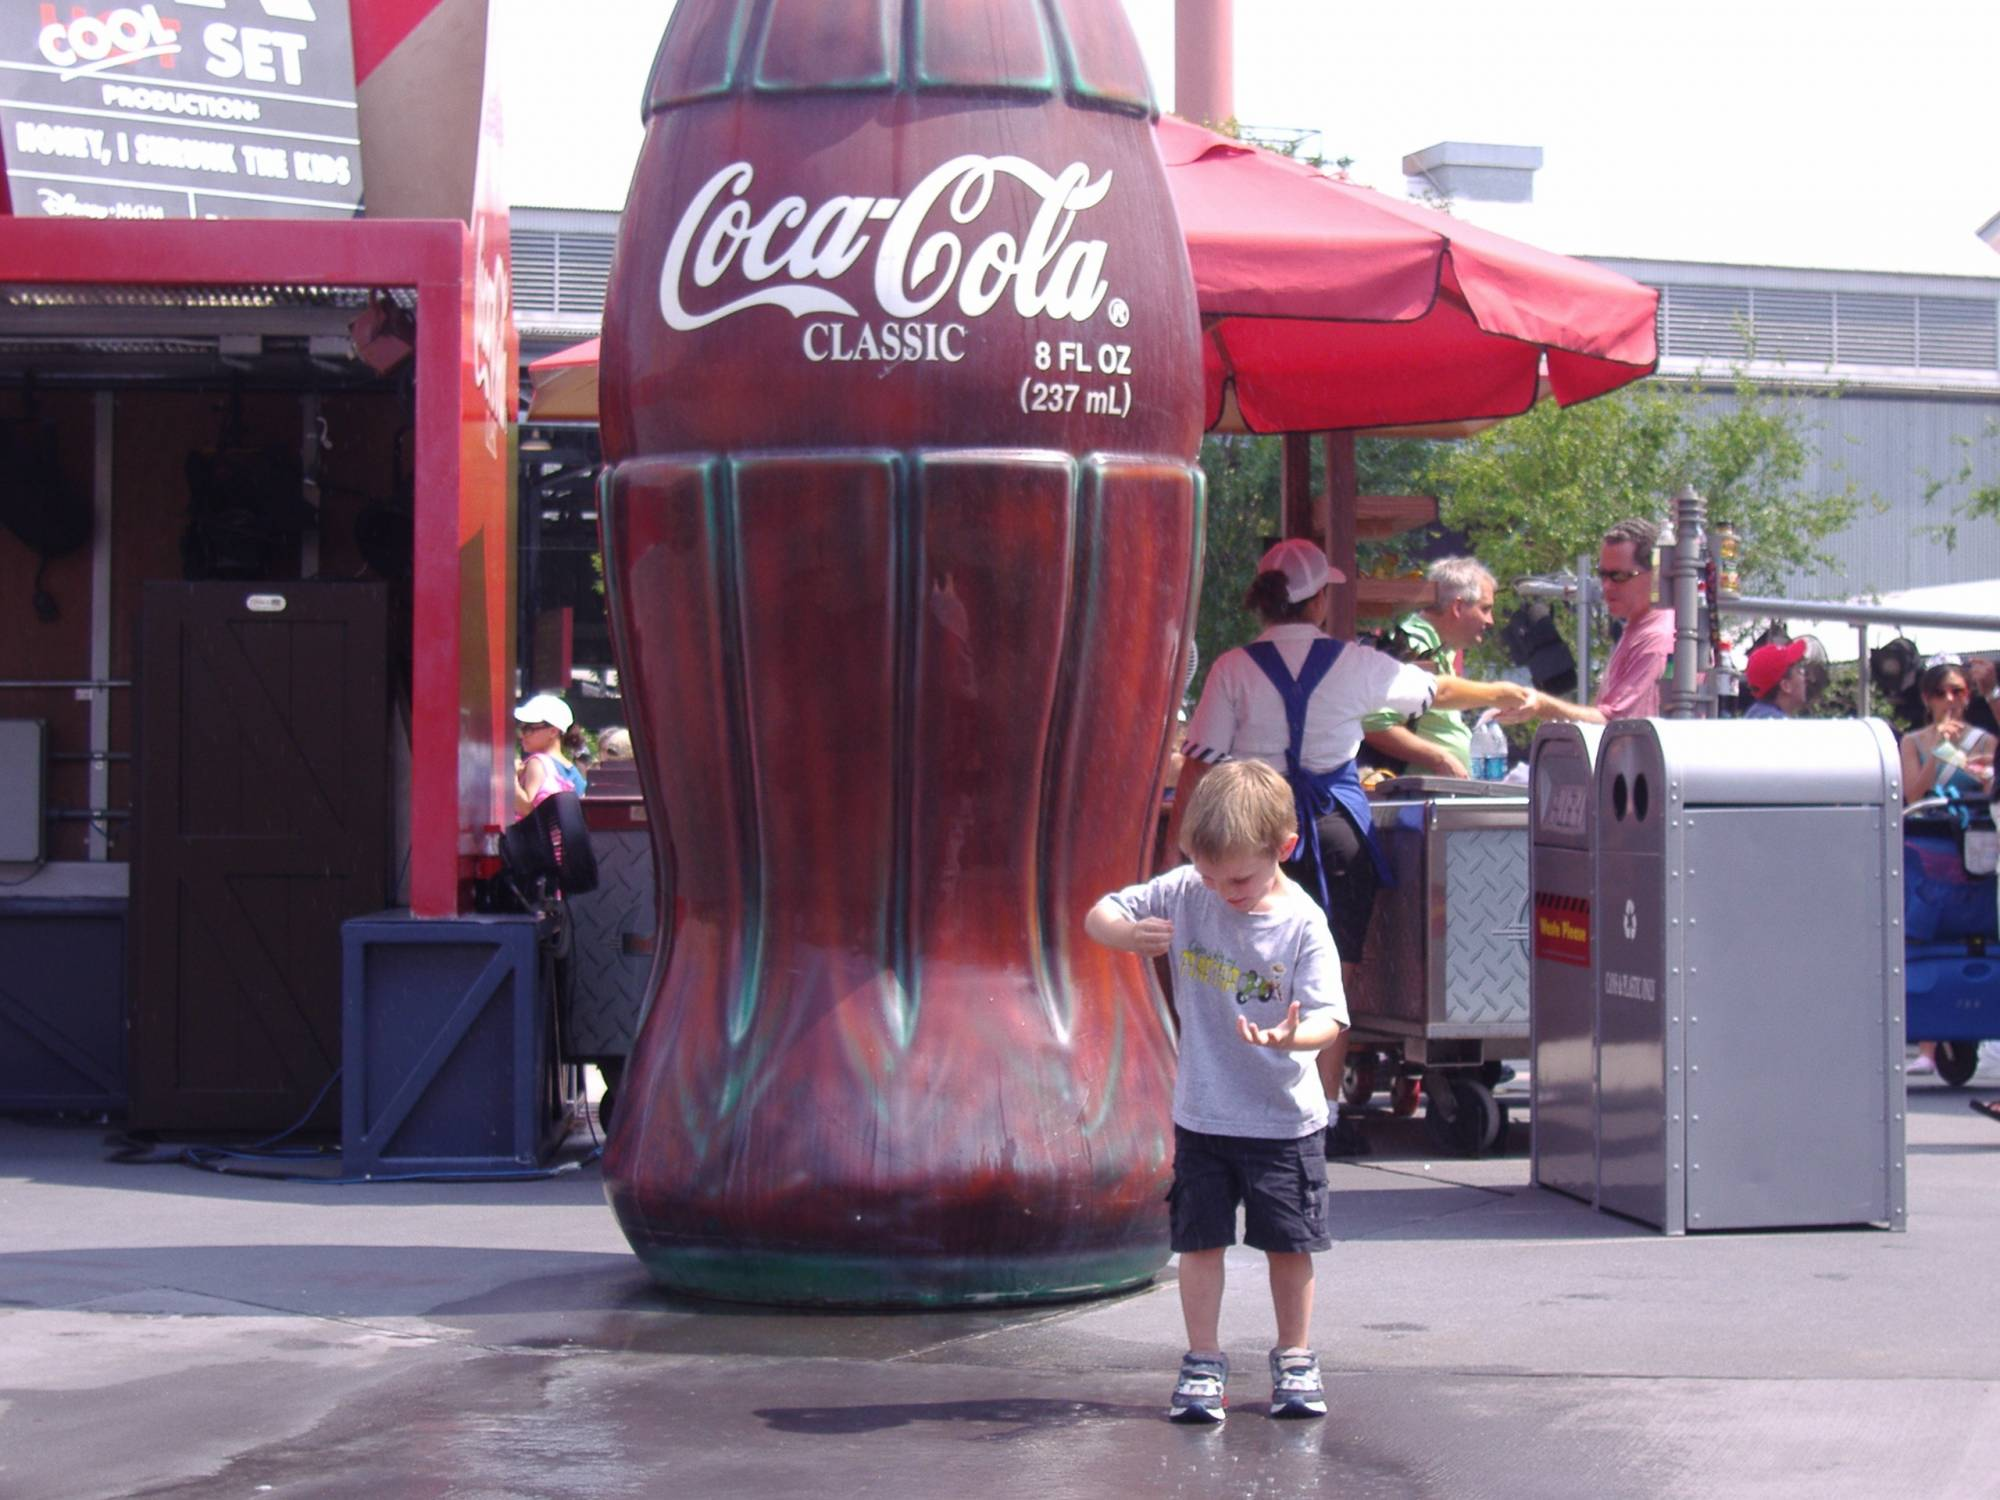 Disney's Hollywood Studios - Big Coca-Cola Bottle that Sprays!